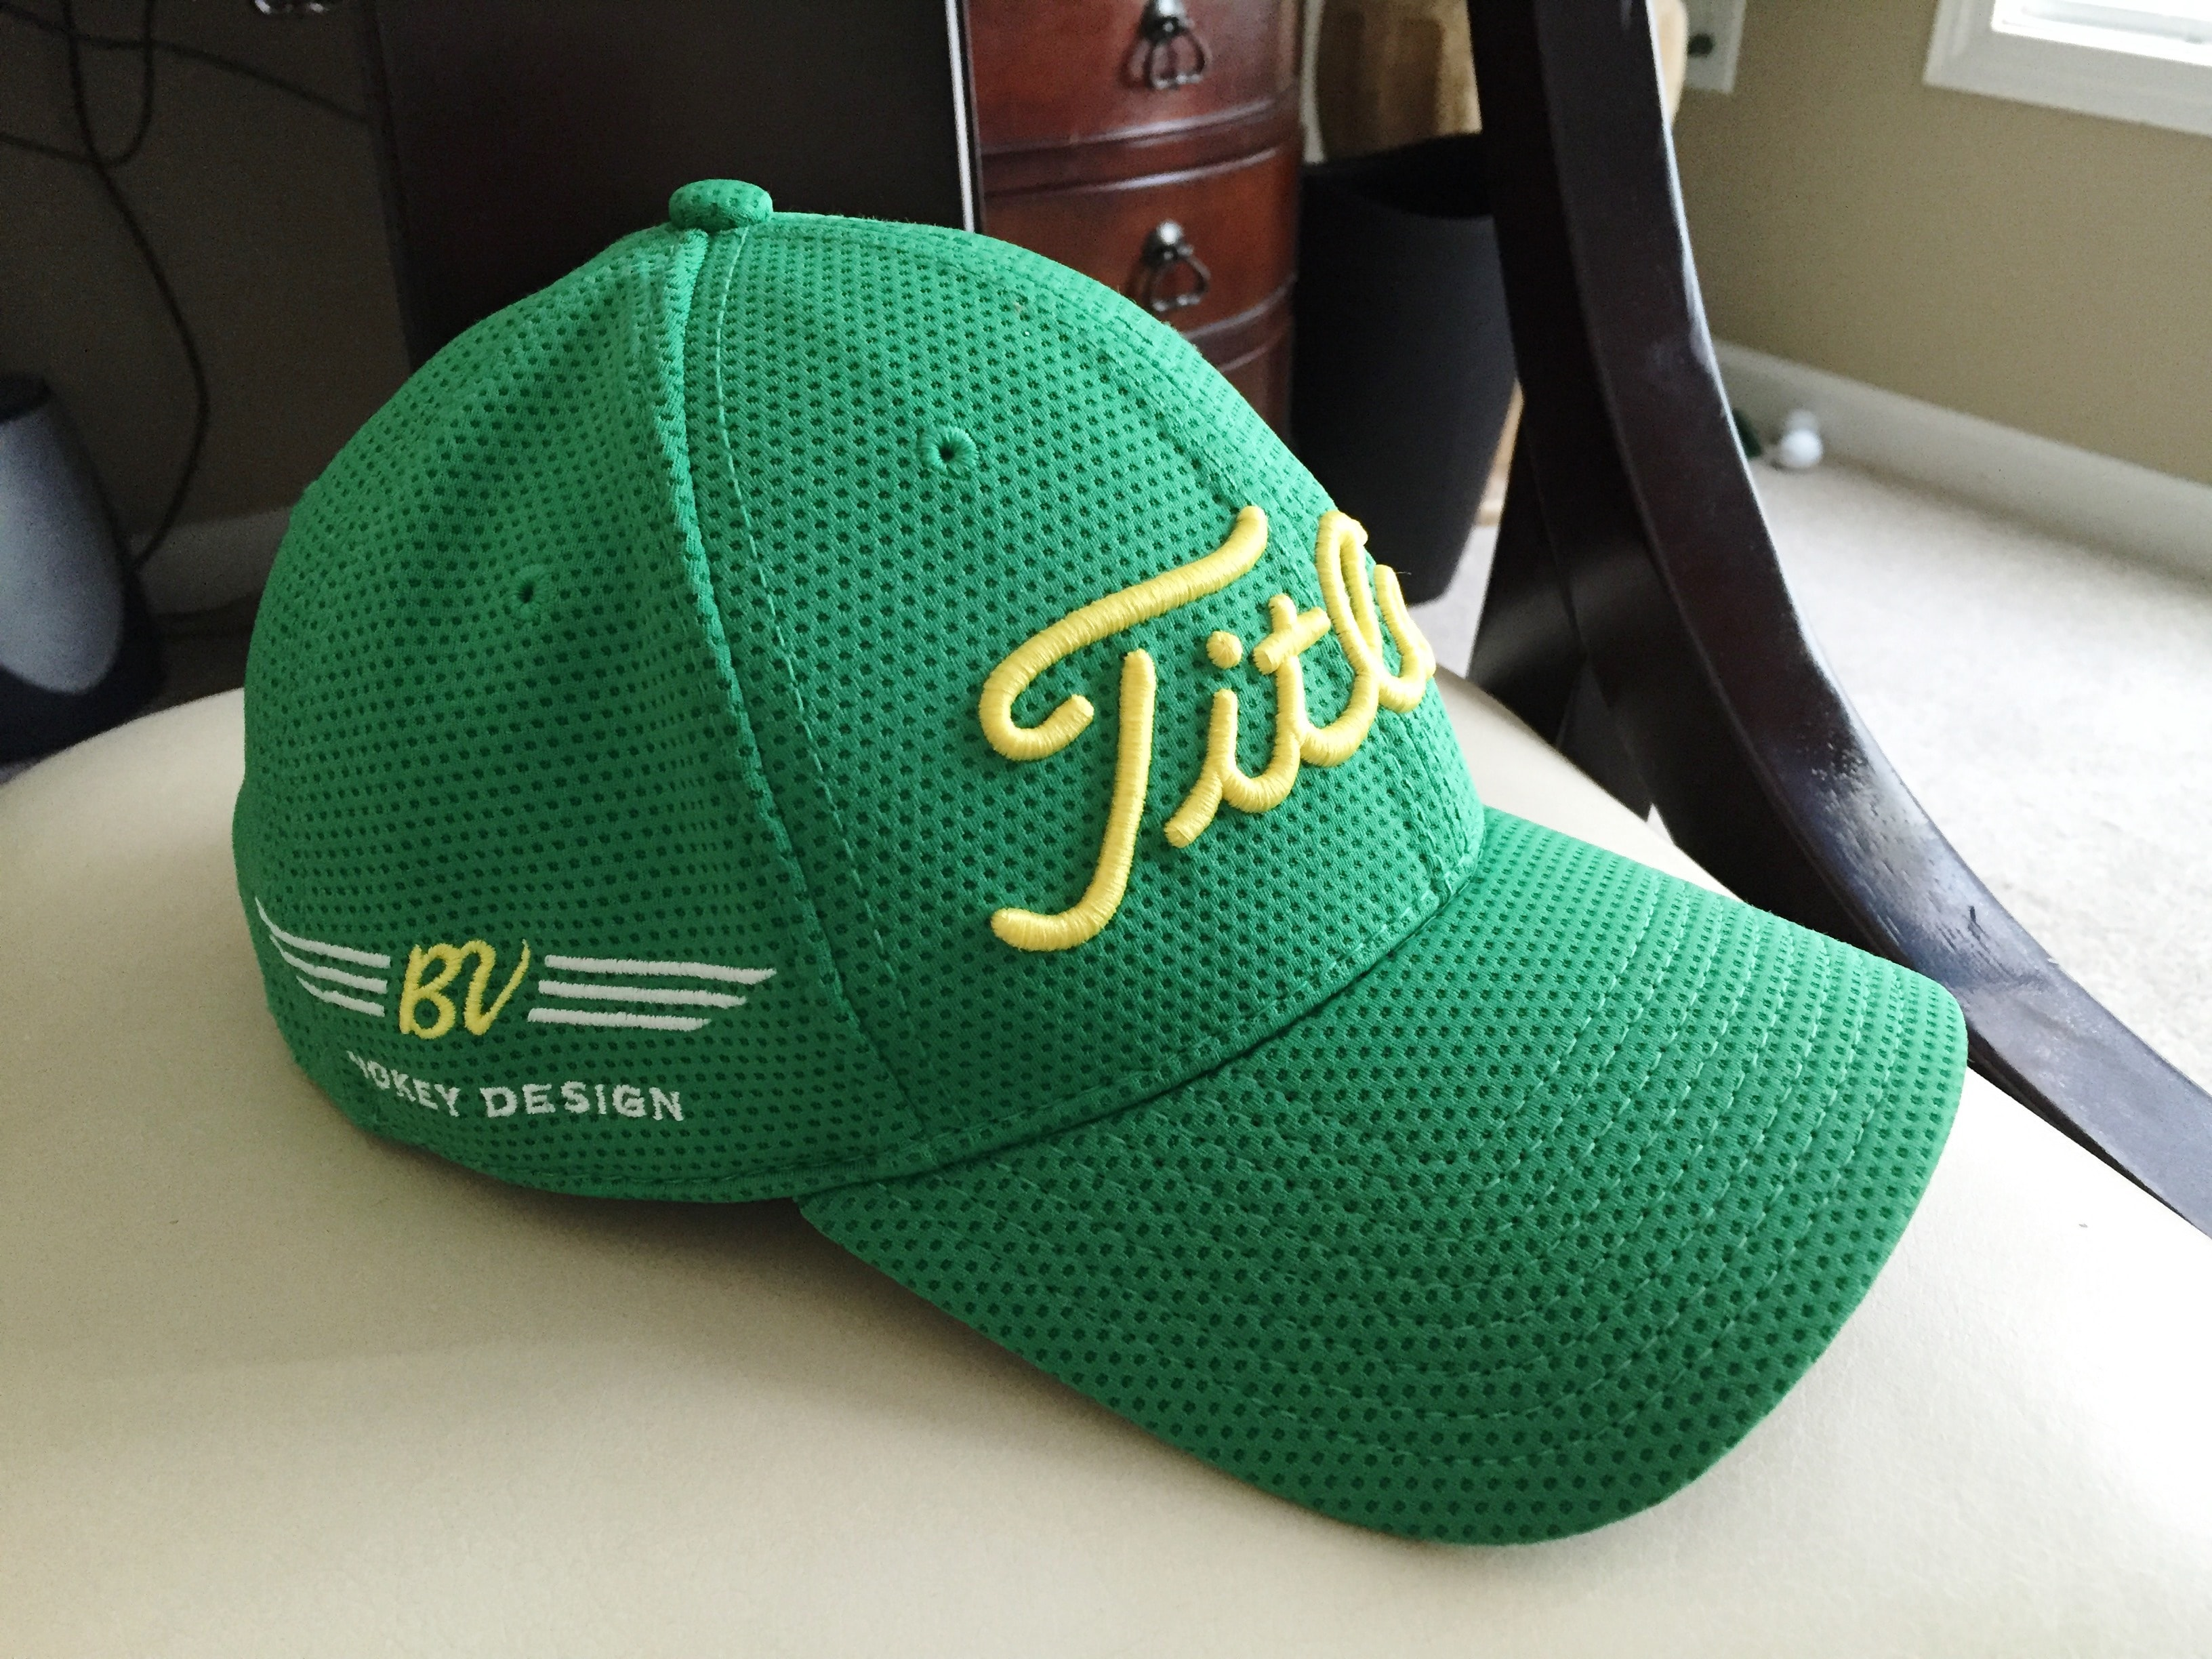 ... mine favorite is the titleist masters limited edition vokey new era hat.  titleist golf foot joy ... 5a71a47dc292